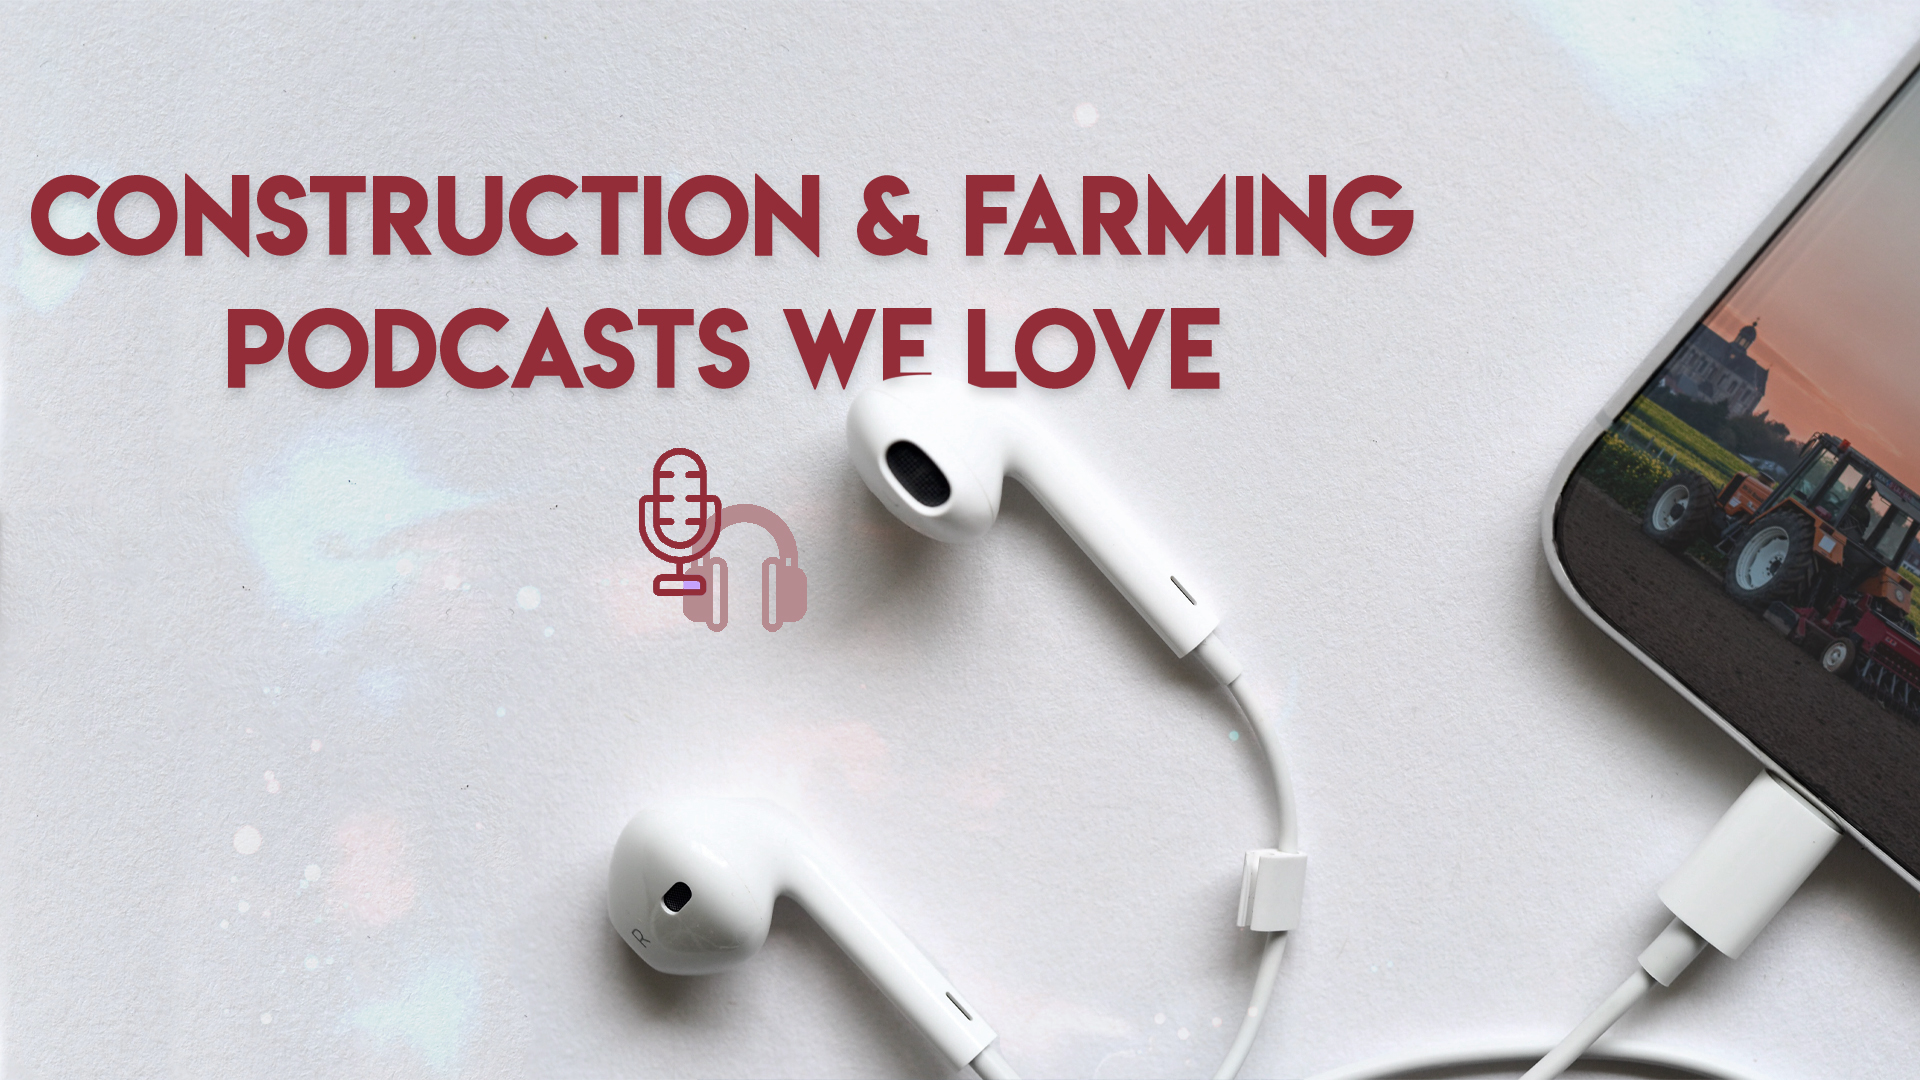 Grovin Farms, Gainesville, FL | Land Clearing, Site development, Steelwrist equipment, construction and farming podcast